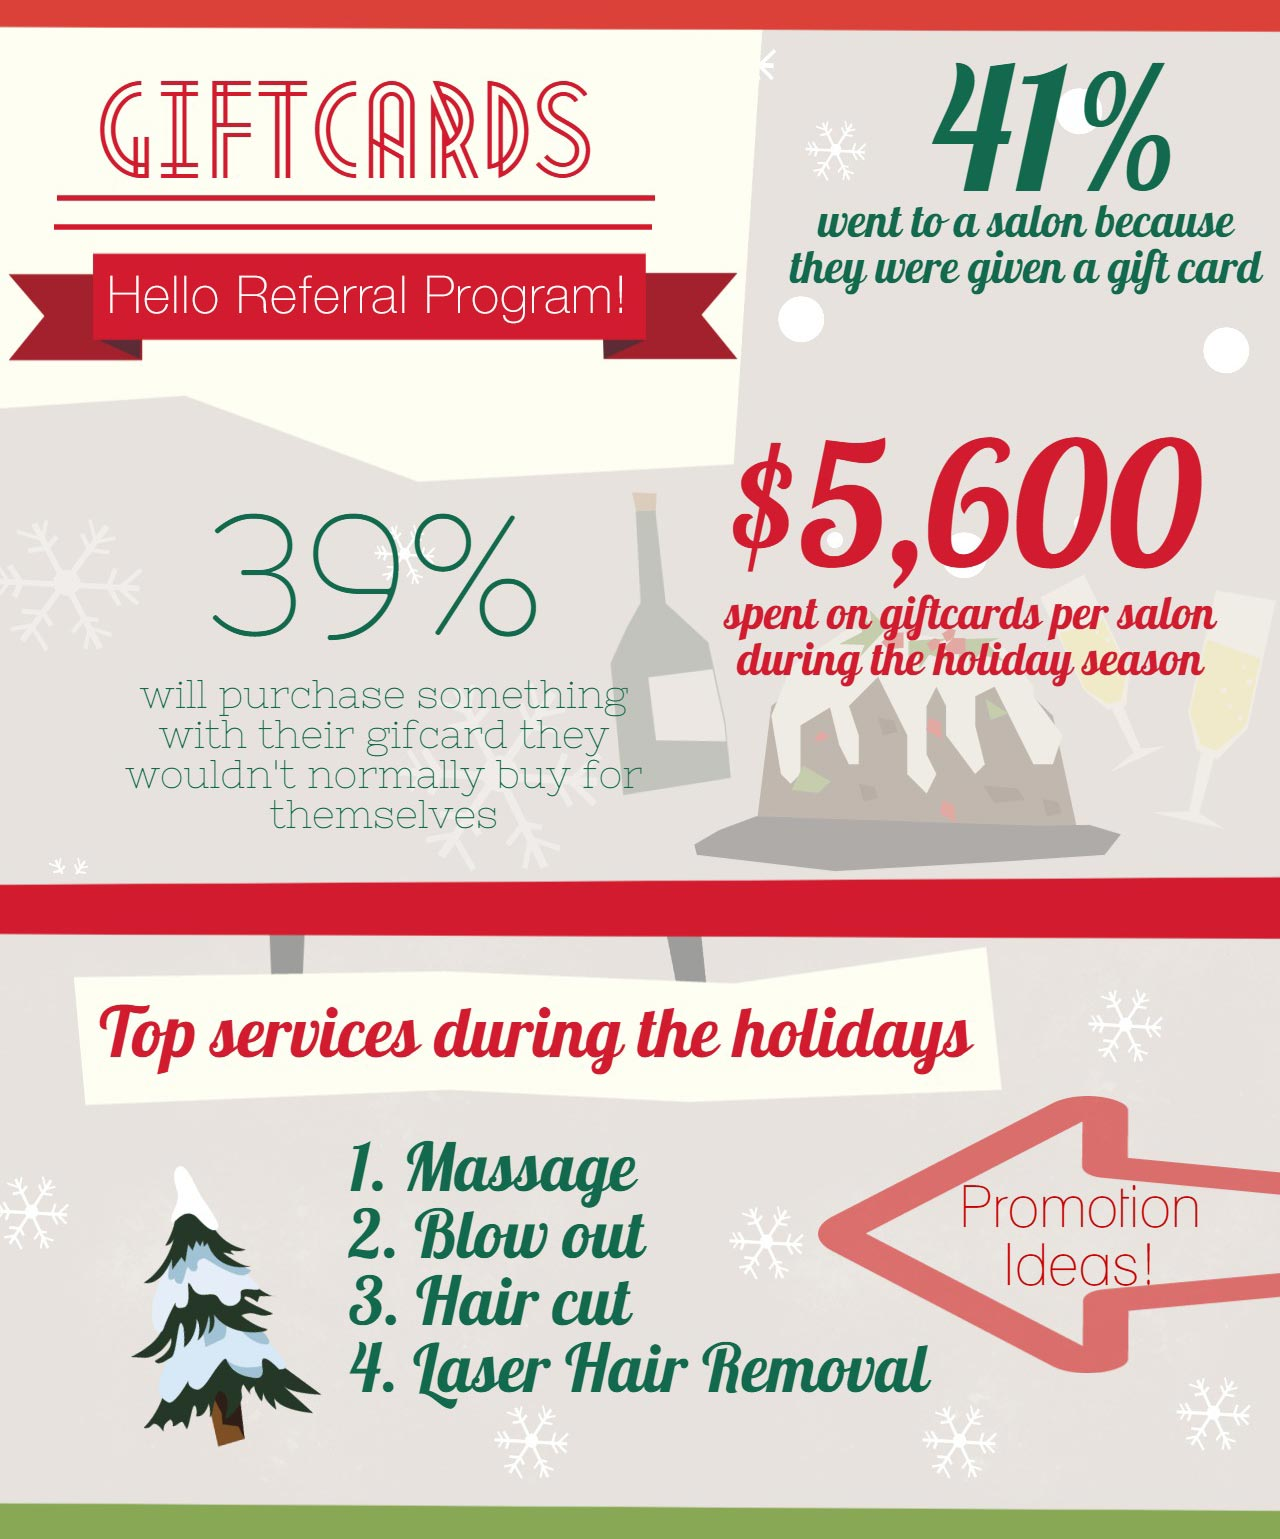 Holiday Marketing Guide For Beauty Professionals - MiladyPro